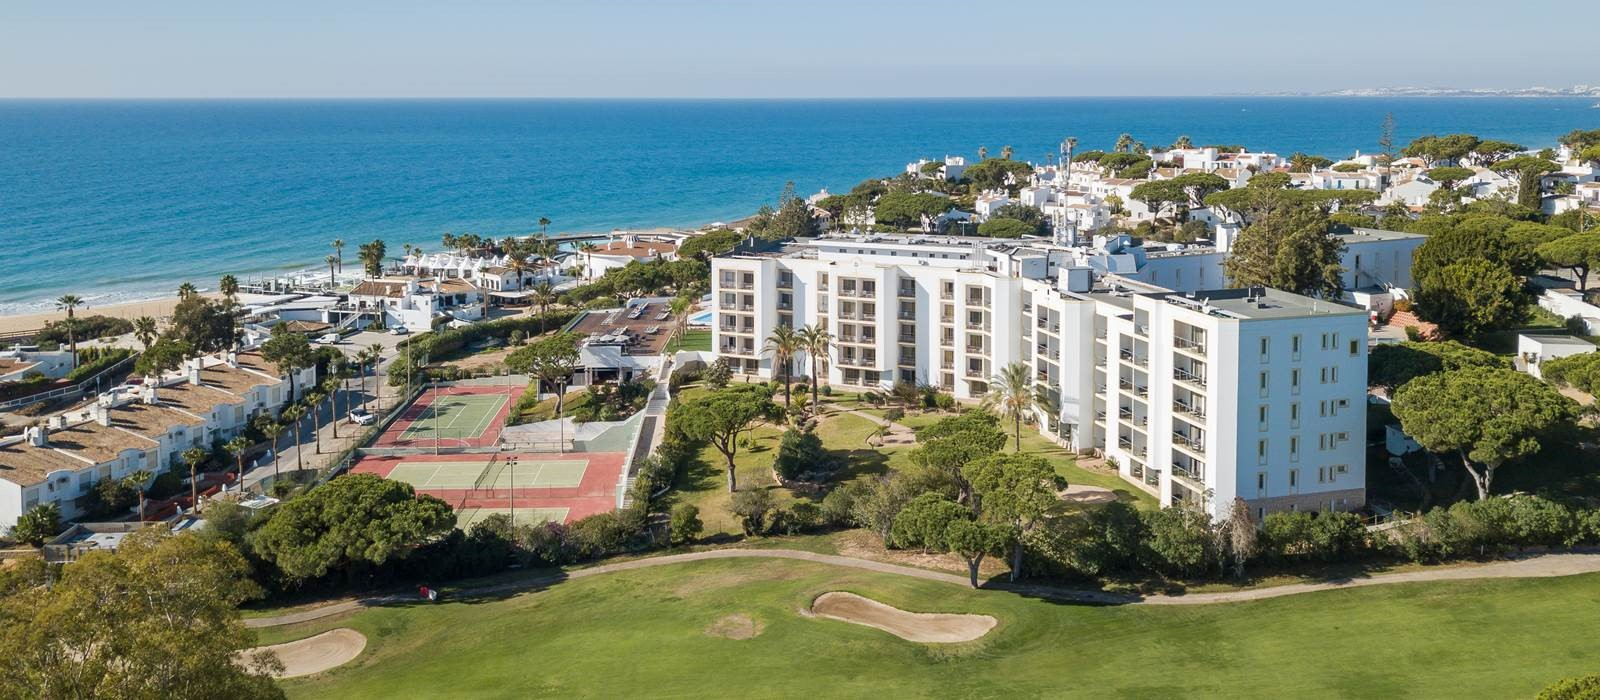 Hotel Tivoli Carvoeiro Algarve Booking Portugal Golf Holidays Direct Golf Holidays Golf Travel